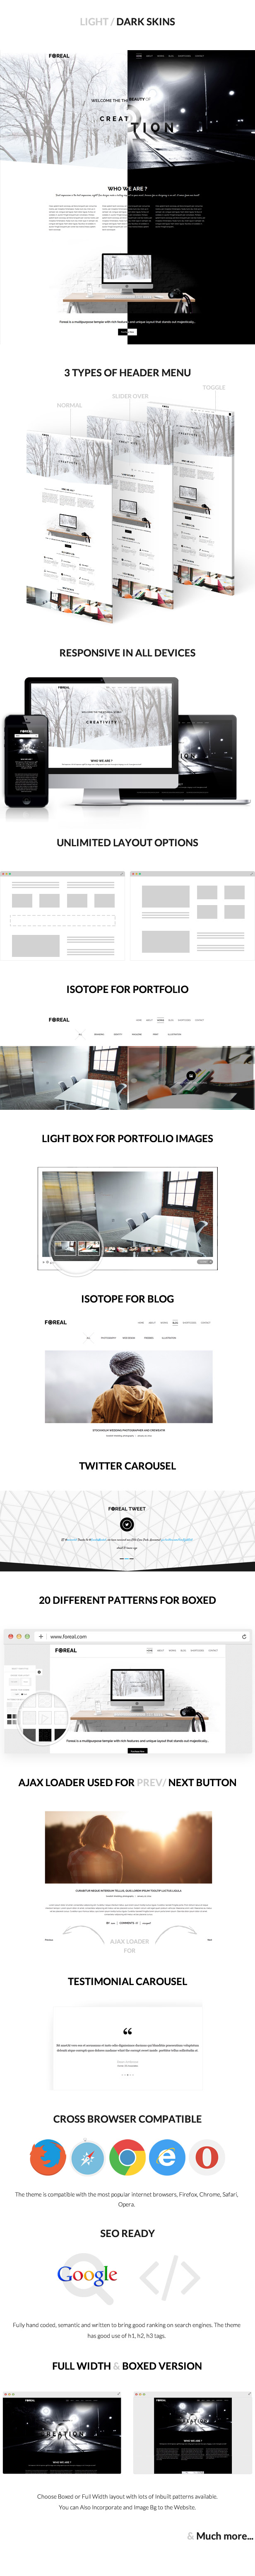 Foreal -  Minimal Business HTML5 Template - 1